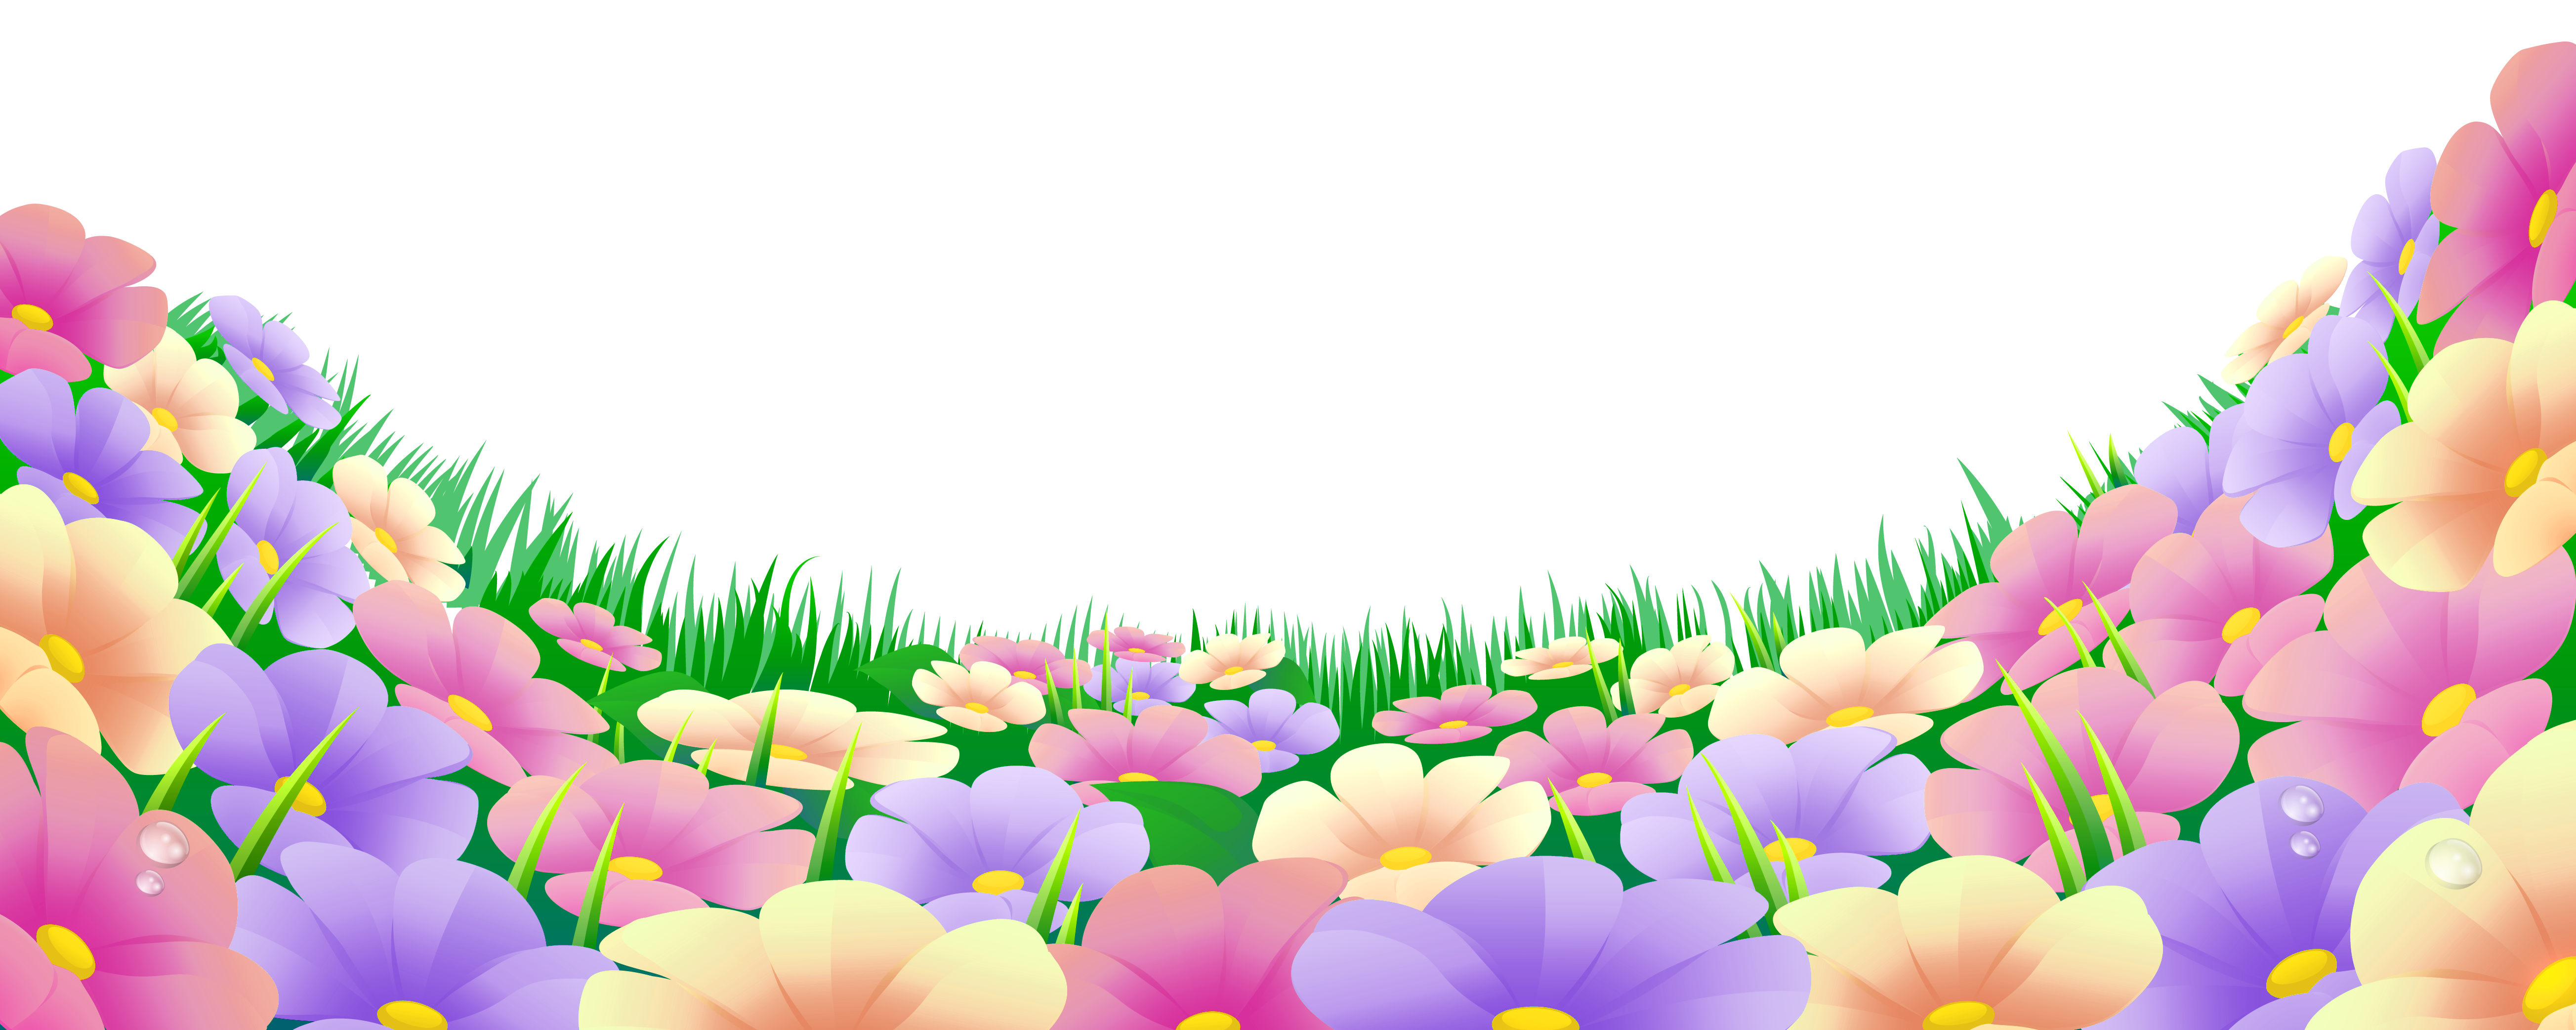 Wildflower clipart pretty. Grass with beautiful flowers